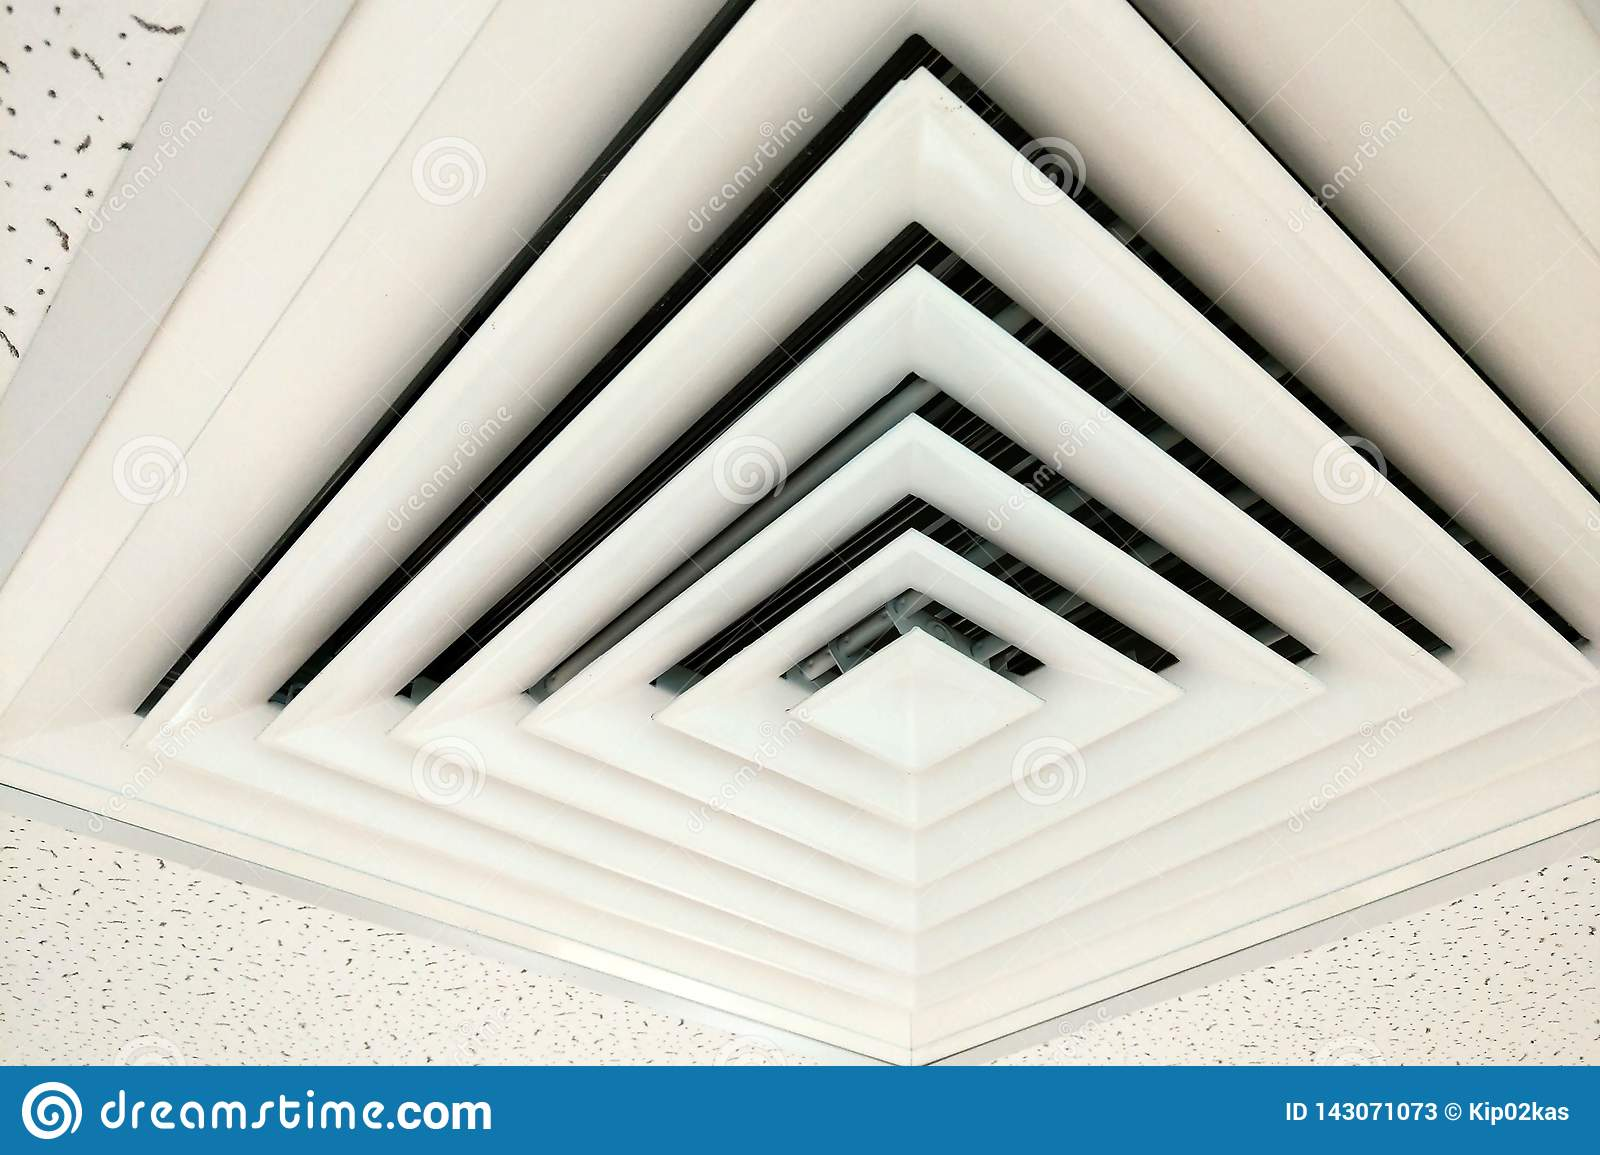 Air duct in square shape, Duct for conditioning heating on a building ceiling